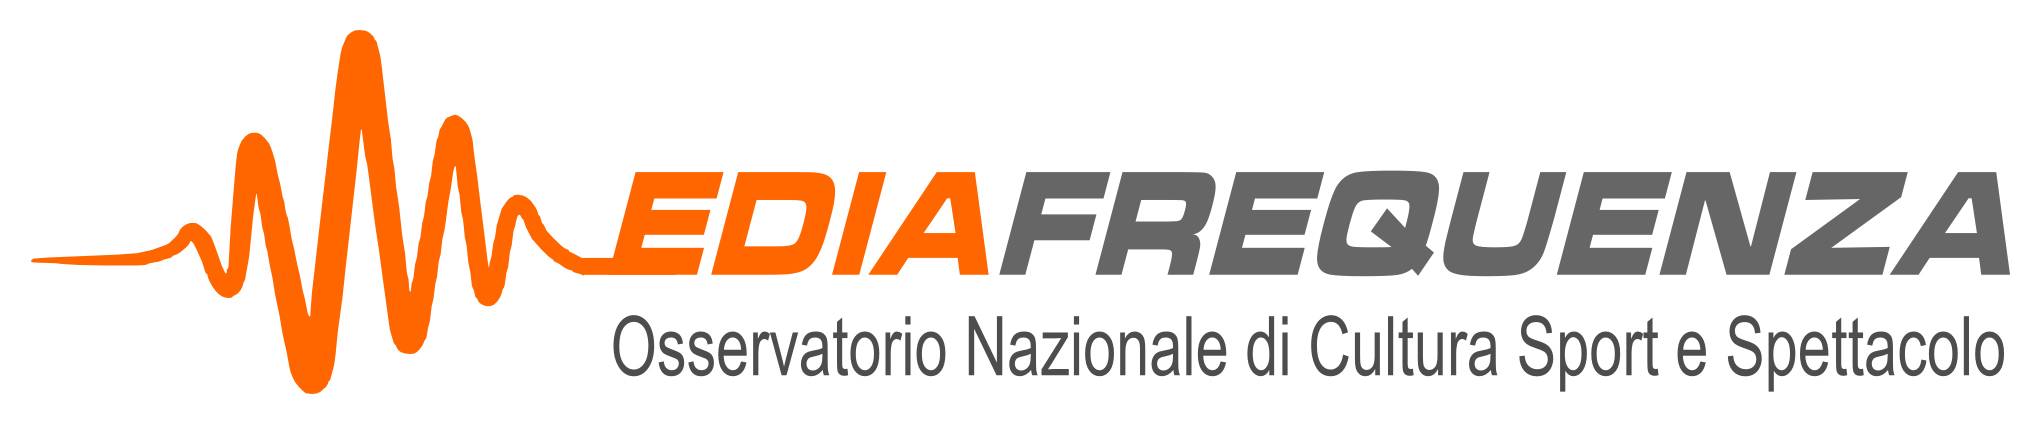 Media Frequenza